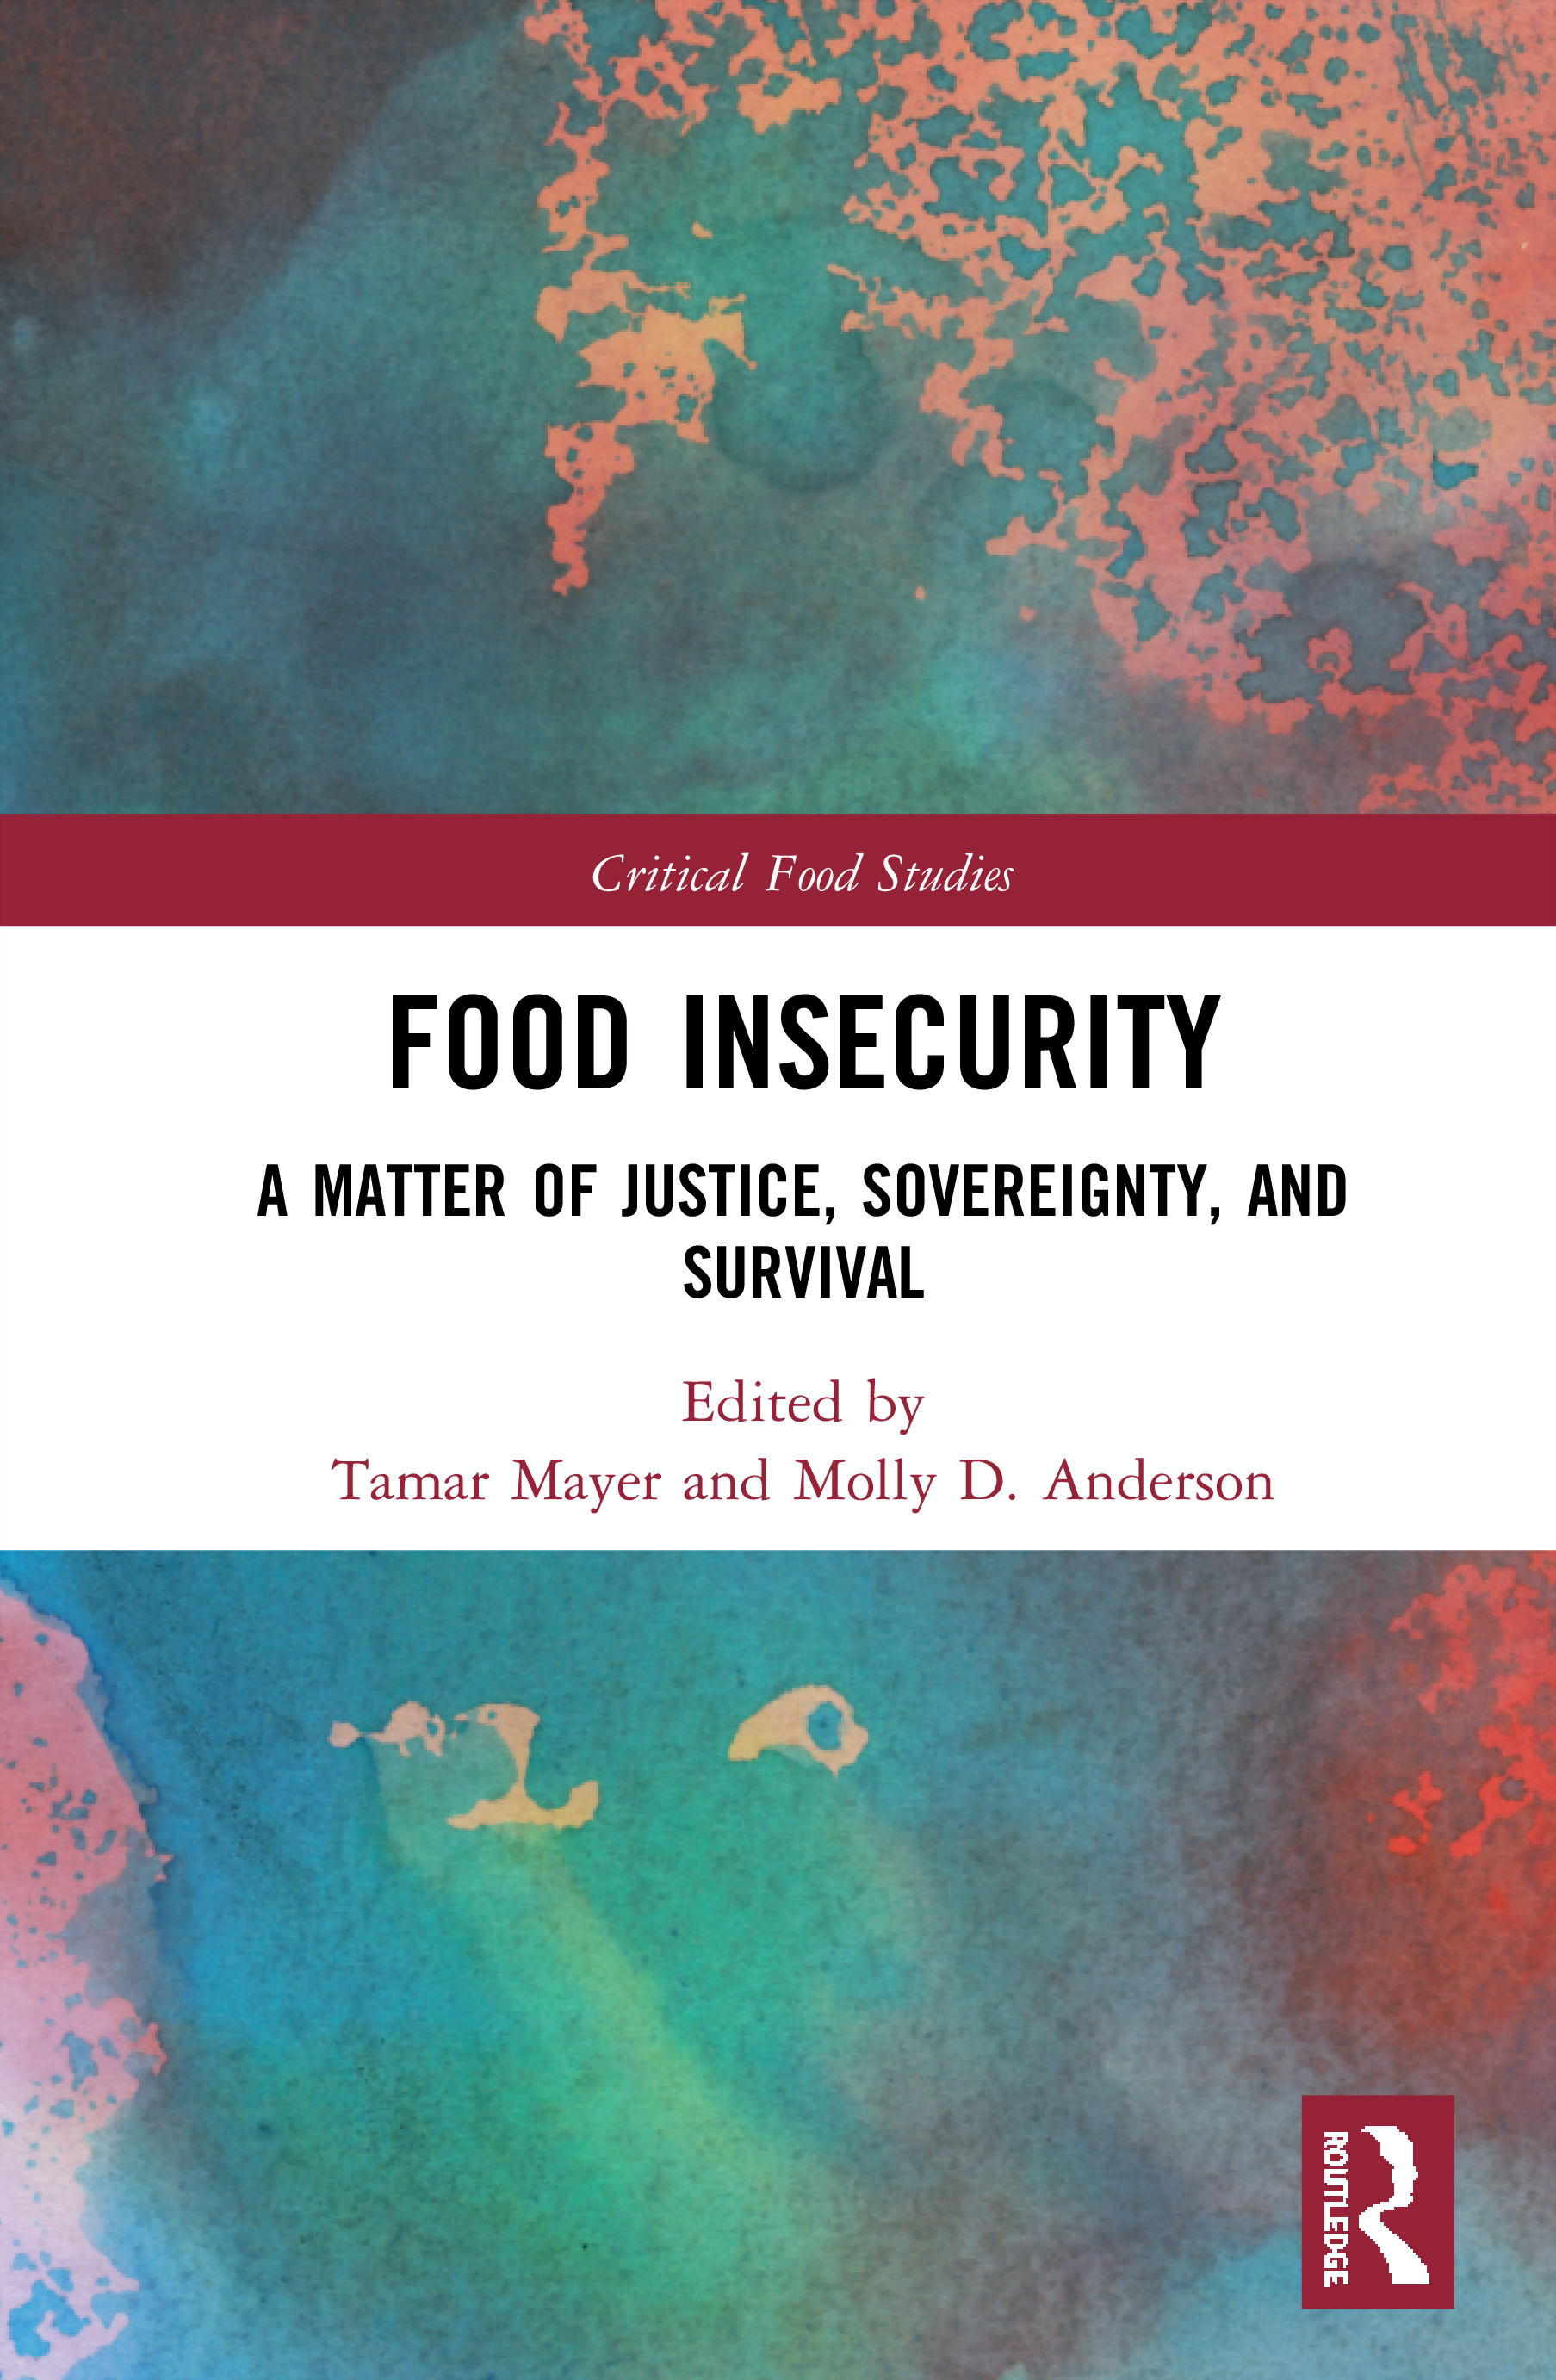 Food Insecurity: A Matter of Justice, Sovereignty, and Survival book cover